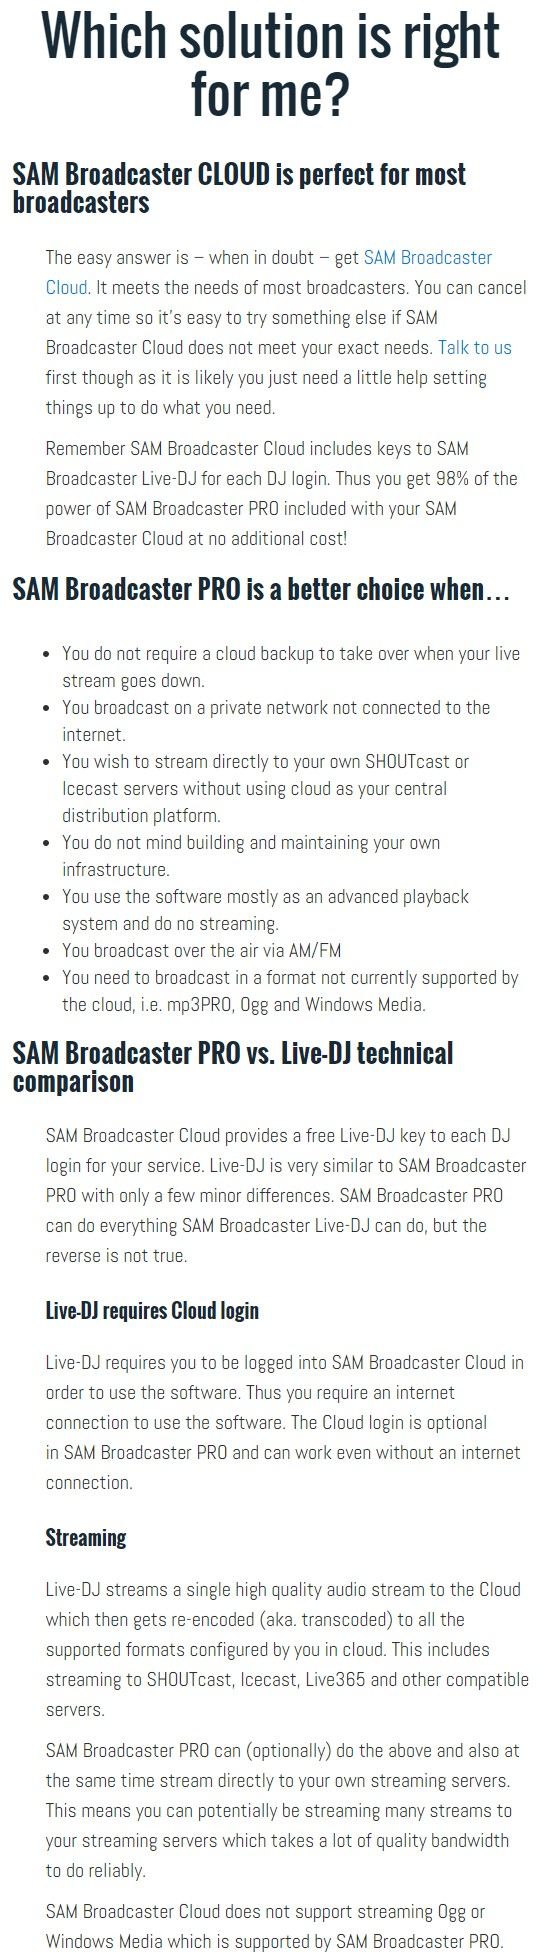 SAM Broadcaster PRO vs SAM Broadcaster Cloud comparison